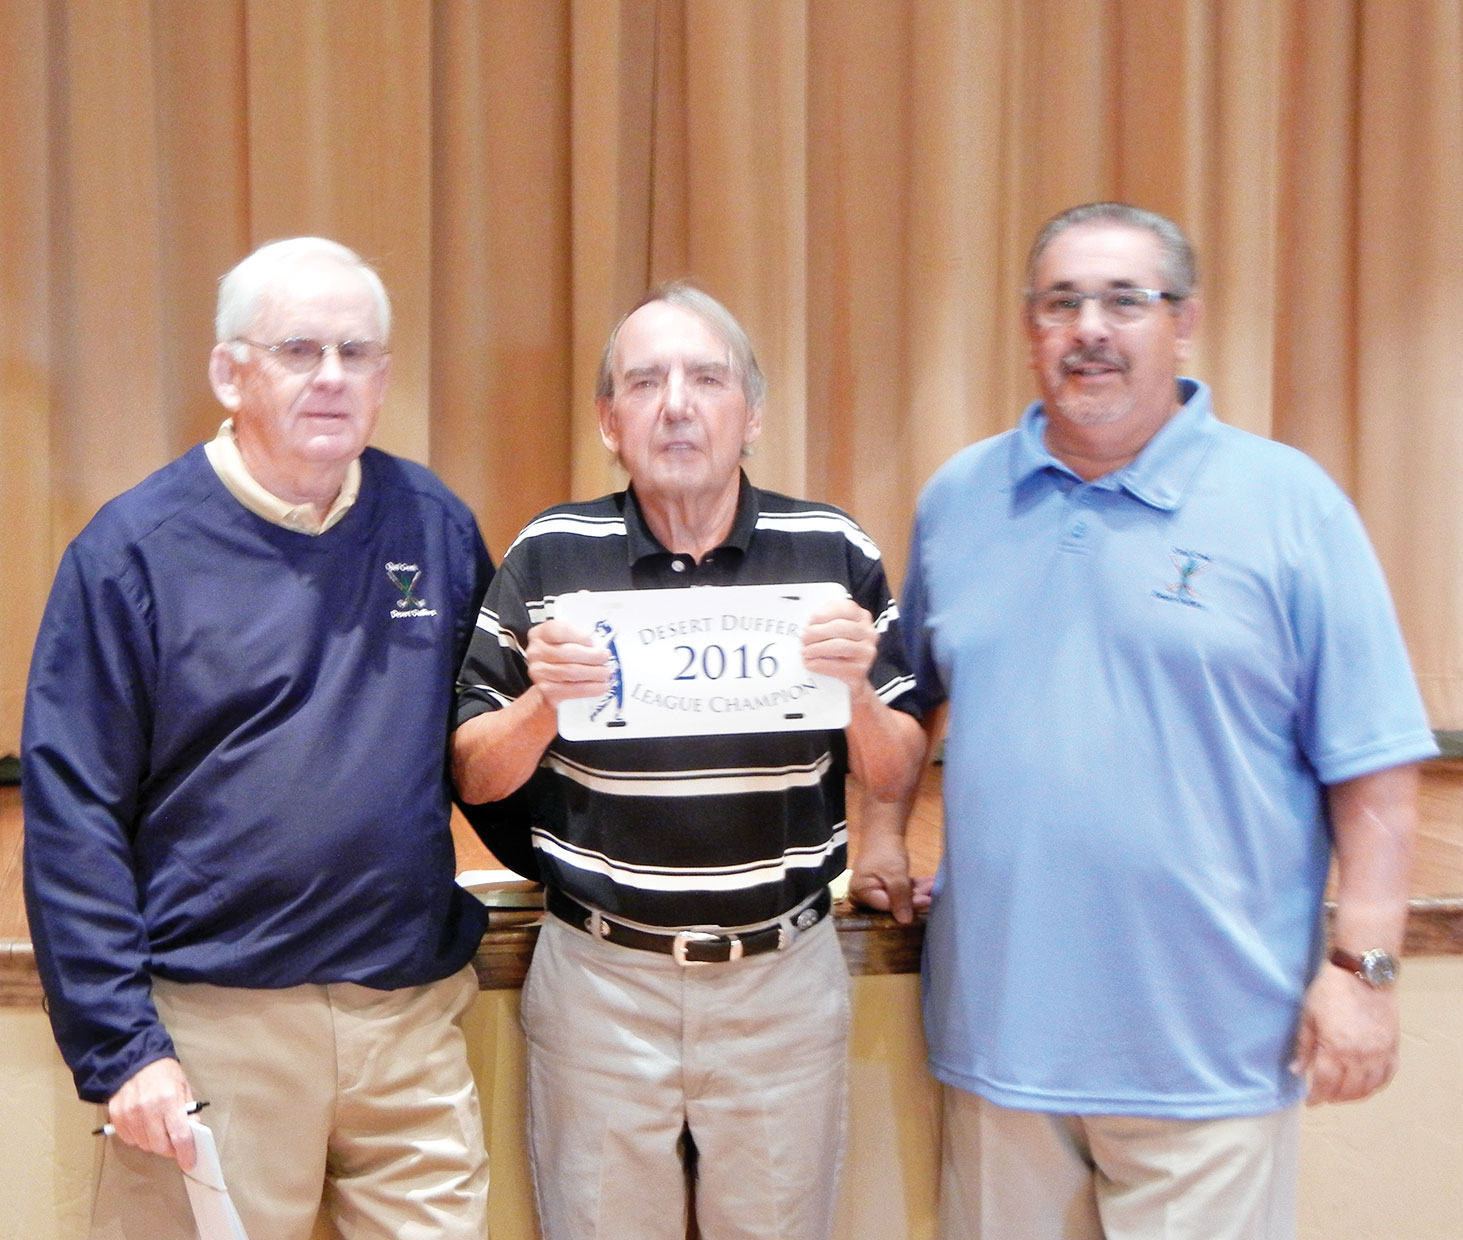 From left: Desert Duffer President Russ Sipe, 2016 Club Champion Peter Prairie and Vice President Ed Pope